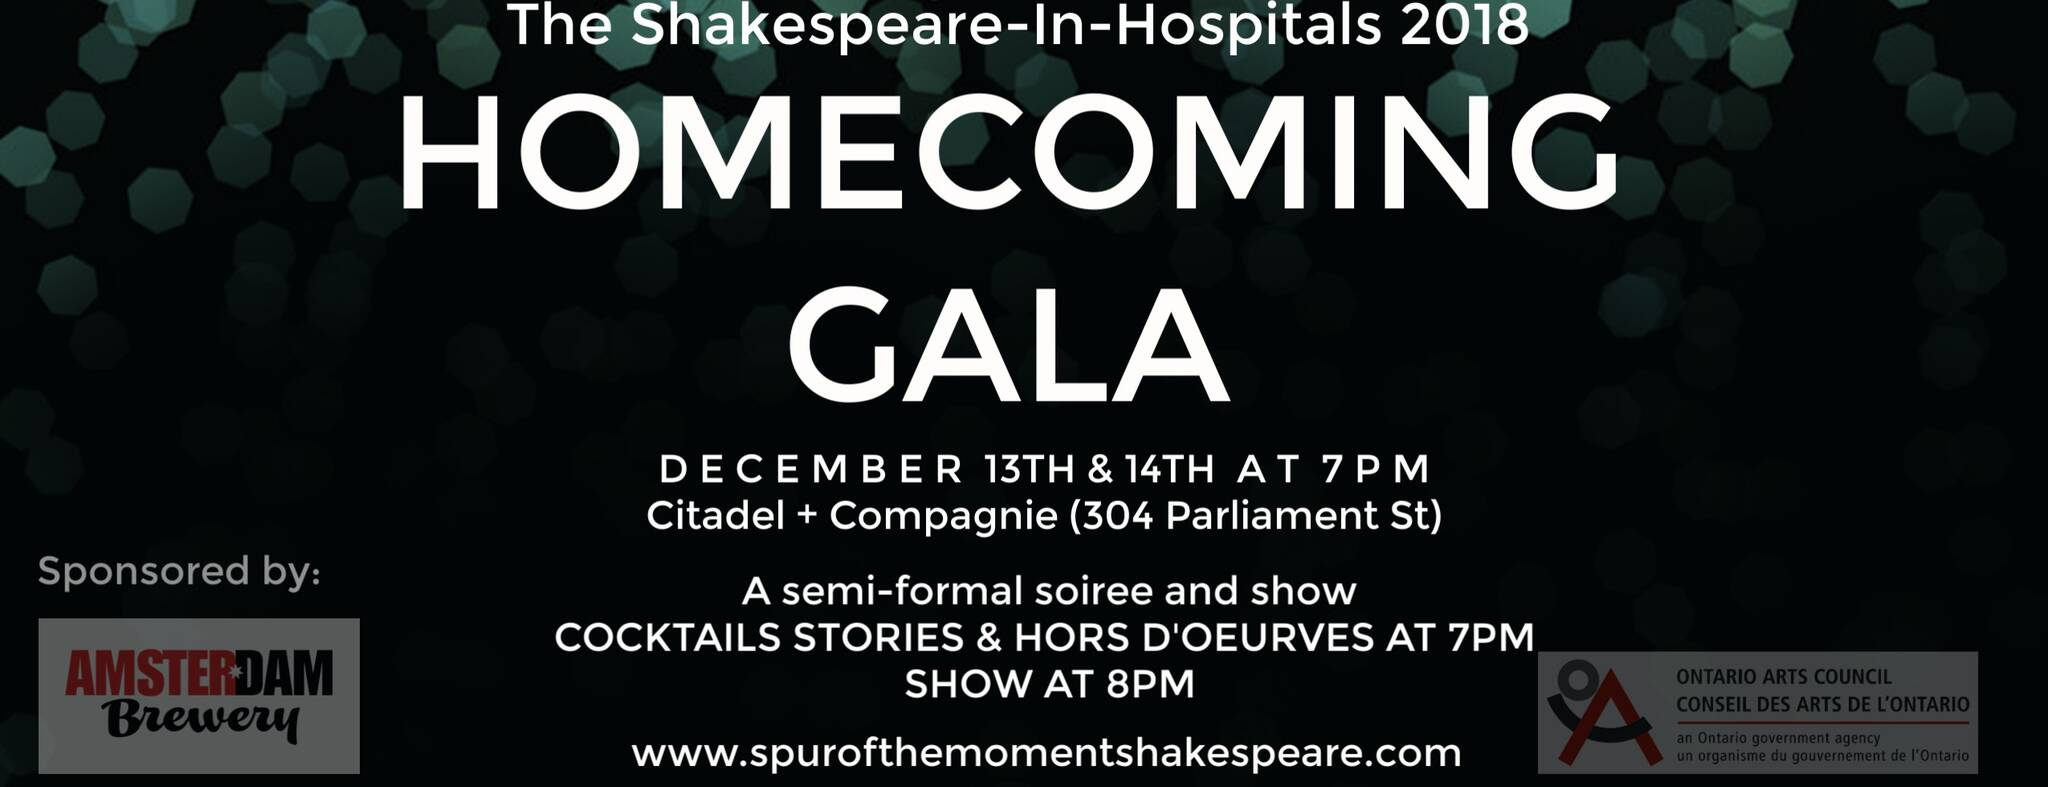 Two-Night Financially Accessible Homecoming Gala Helps